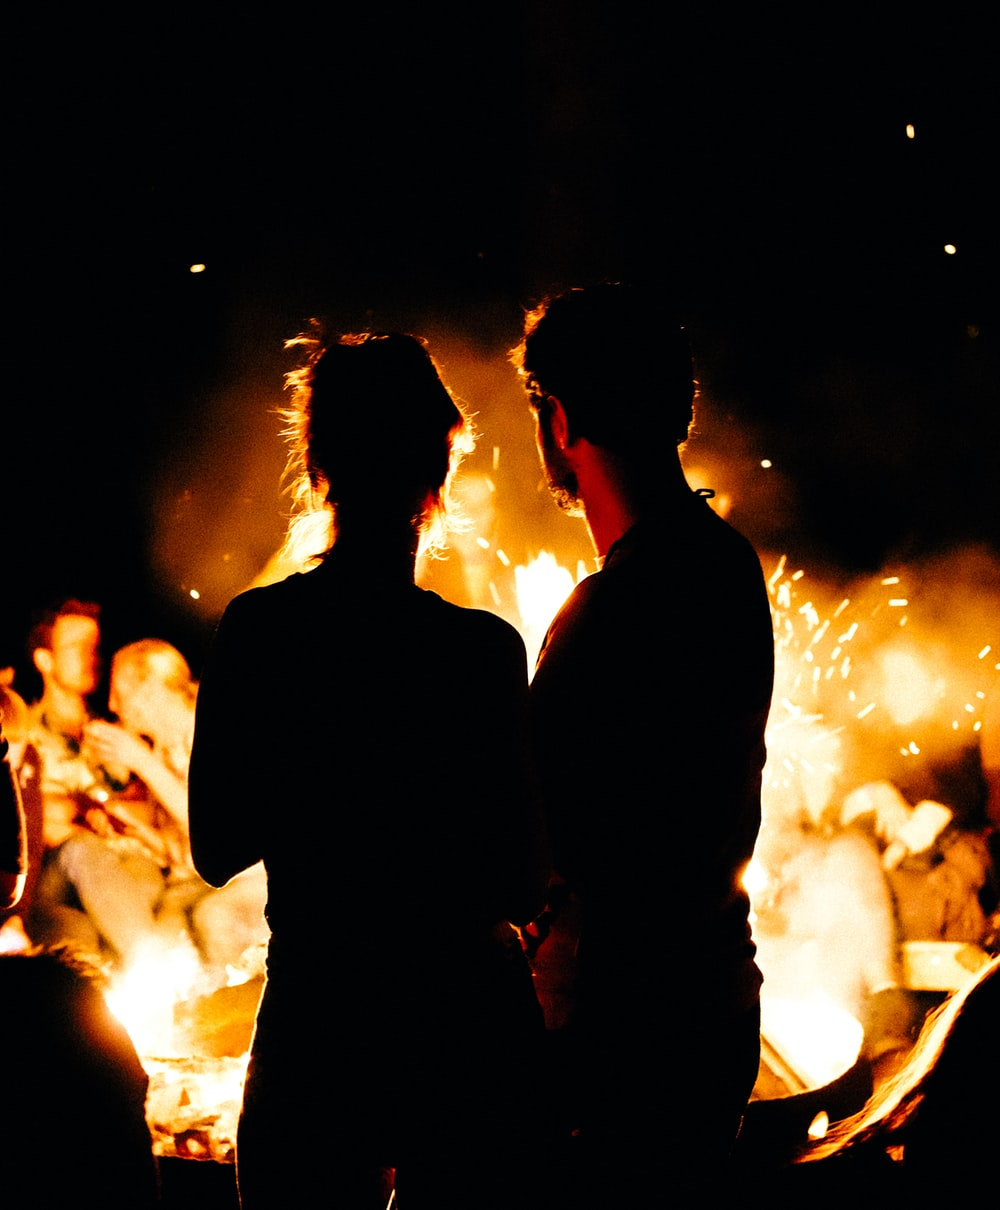 two persons standing in front of bonfire